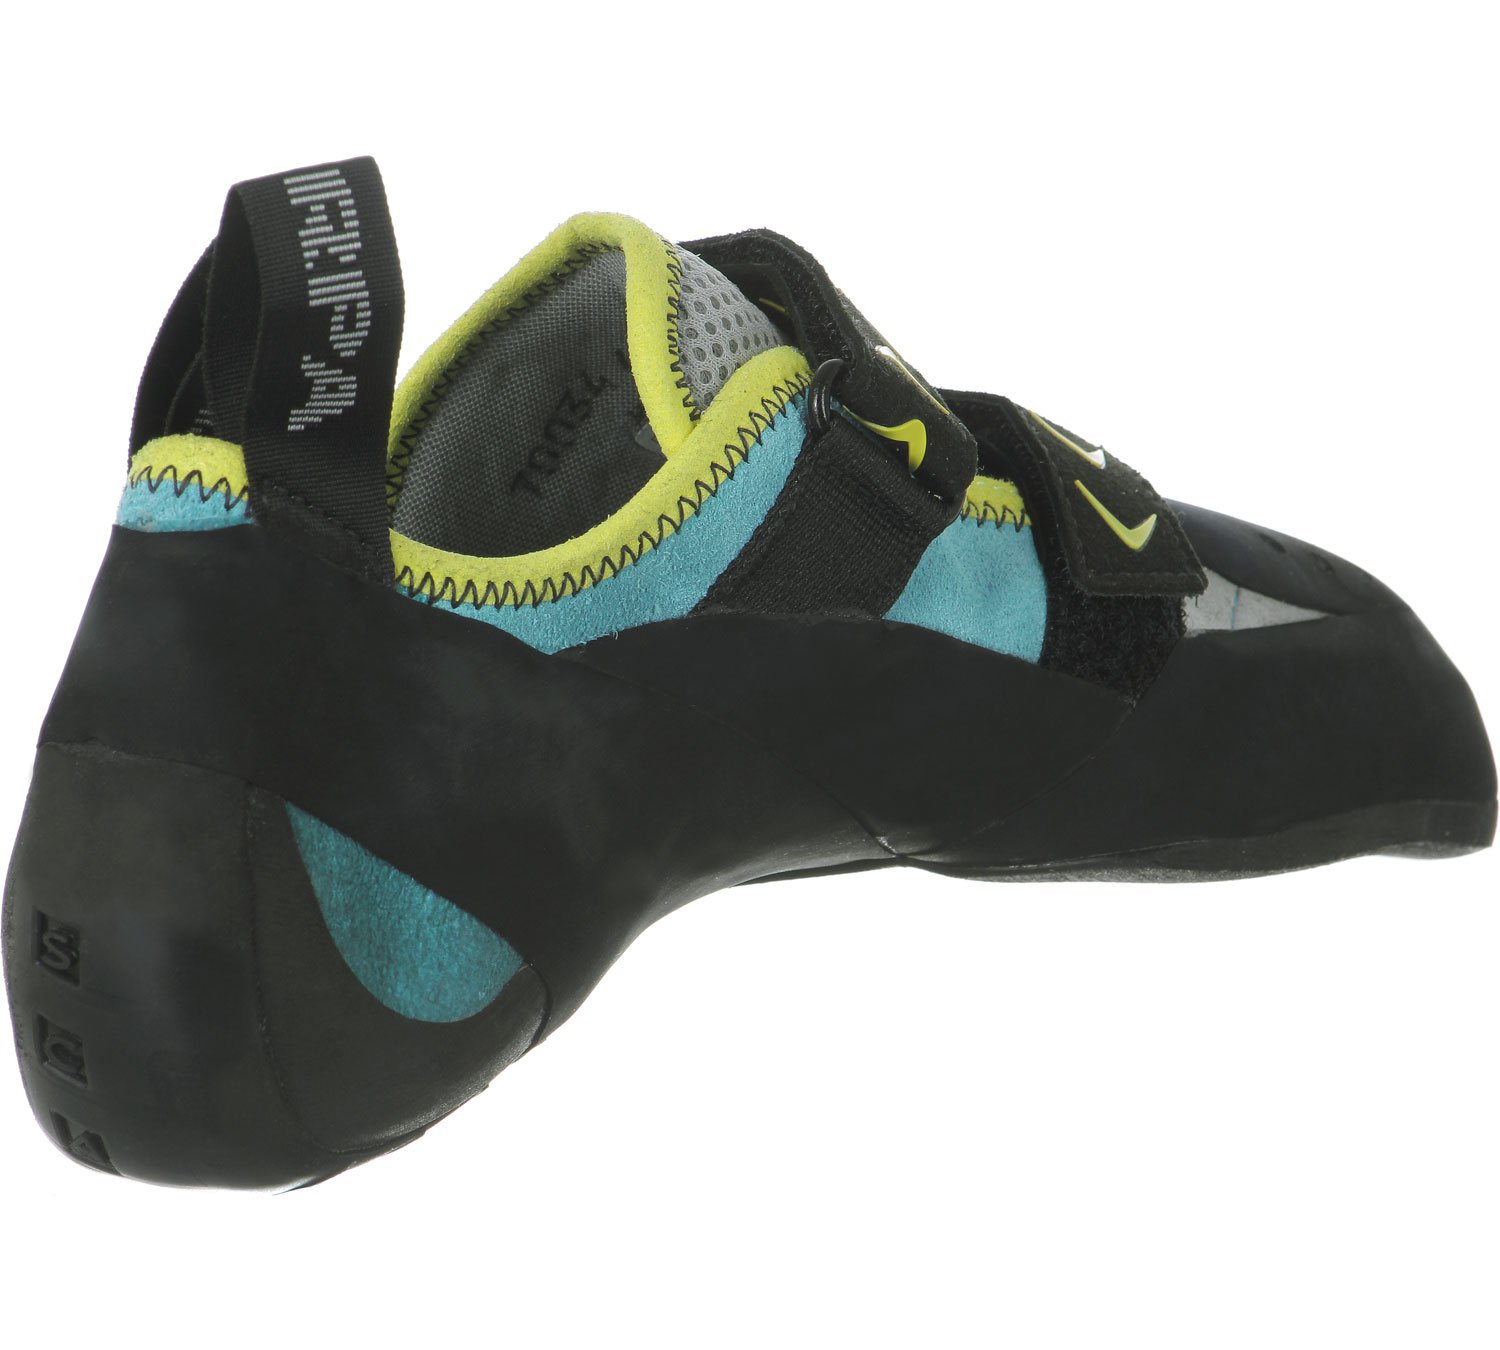 SCARPA turquoise 13923 Scarpa SCARPA turquoise www.lacite 6a5fd51 www.lacite turquoise 727529